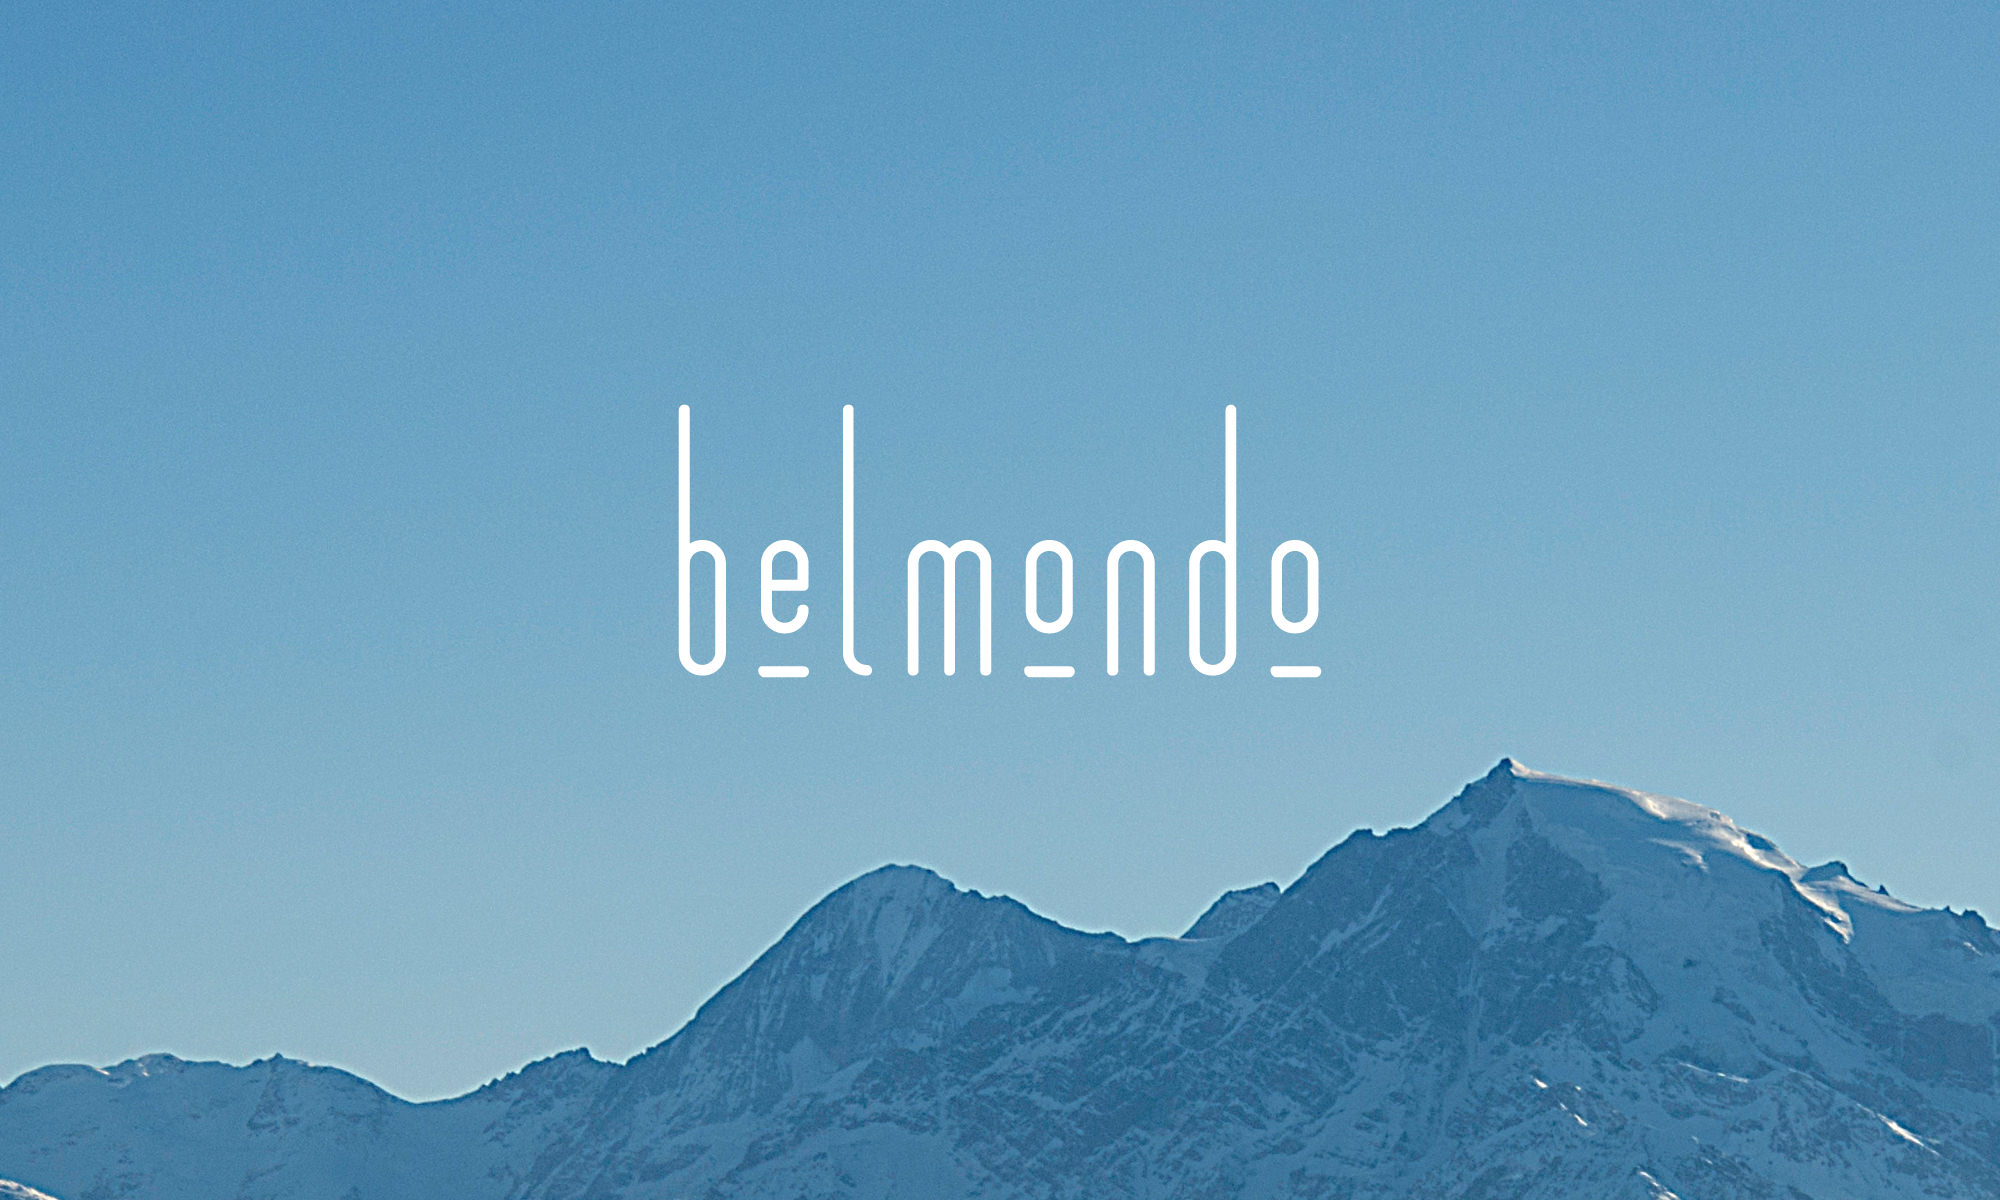 cafe bar belmondo switzerland identity design